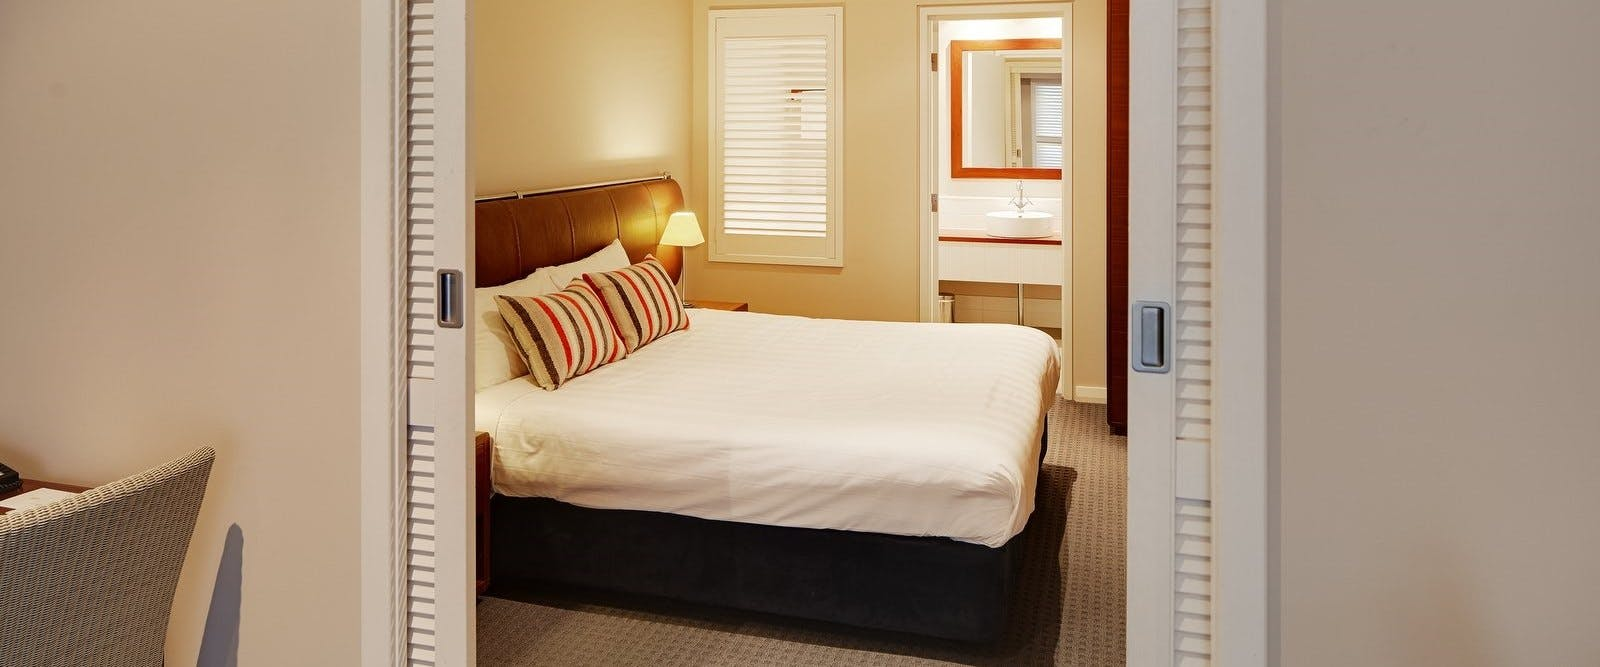 1 bed apartment king bed, Seashells Yallingup, Margaret River